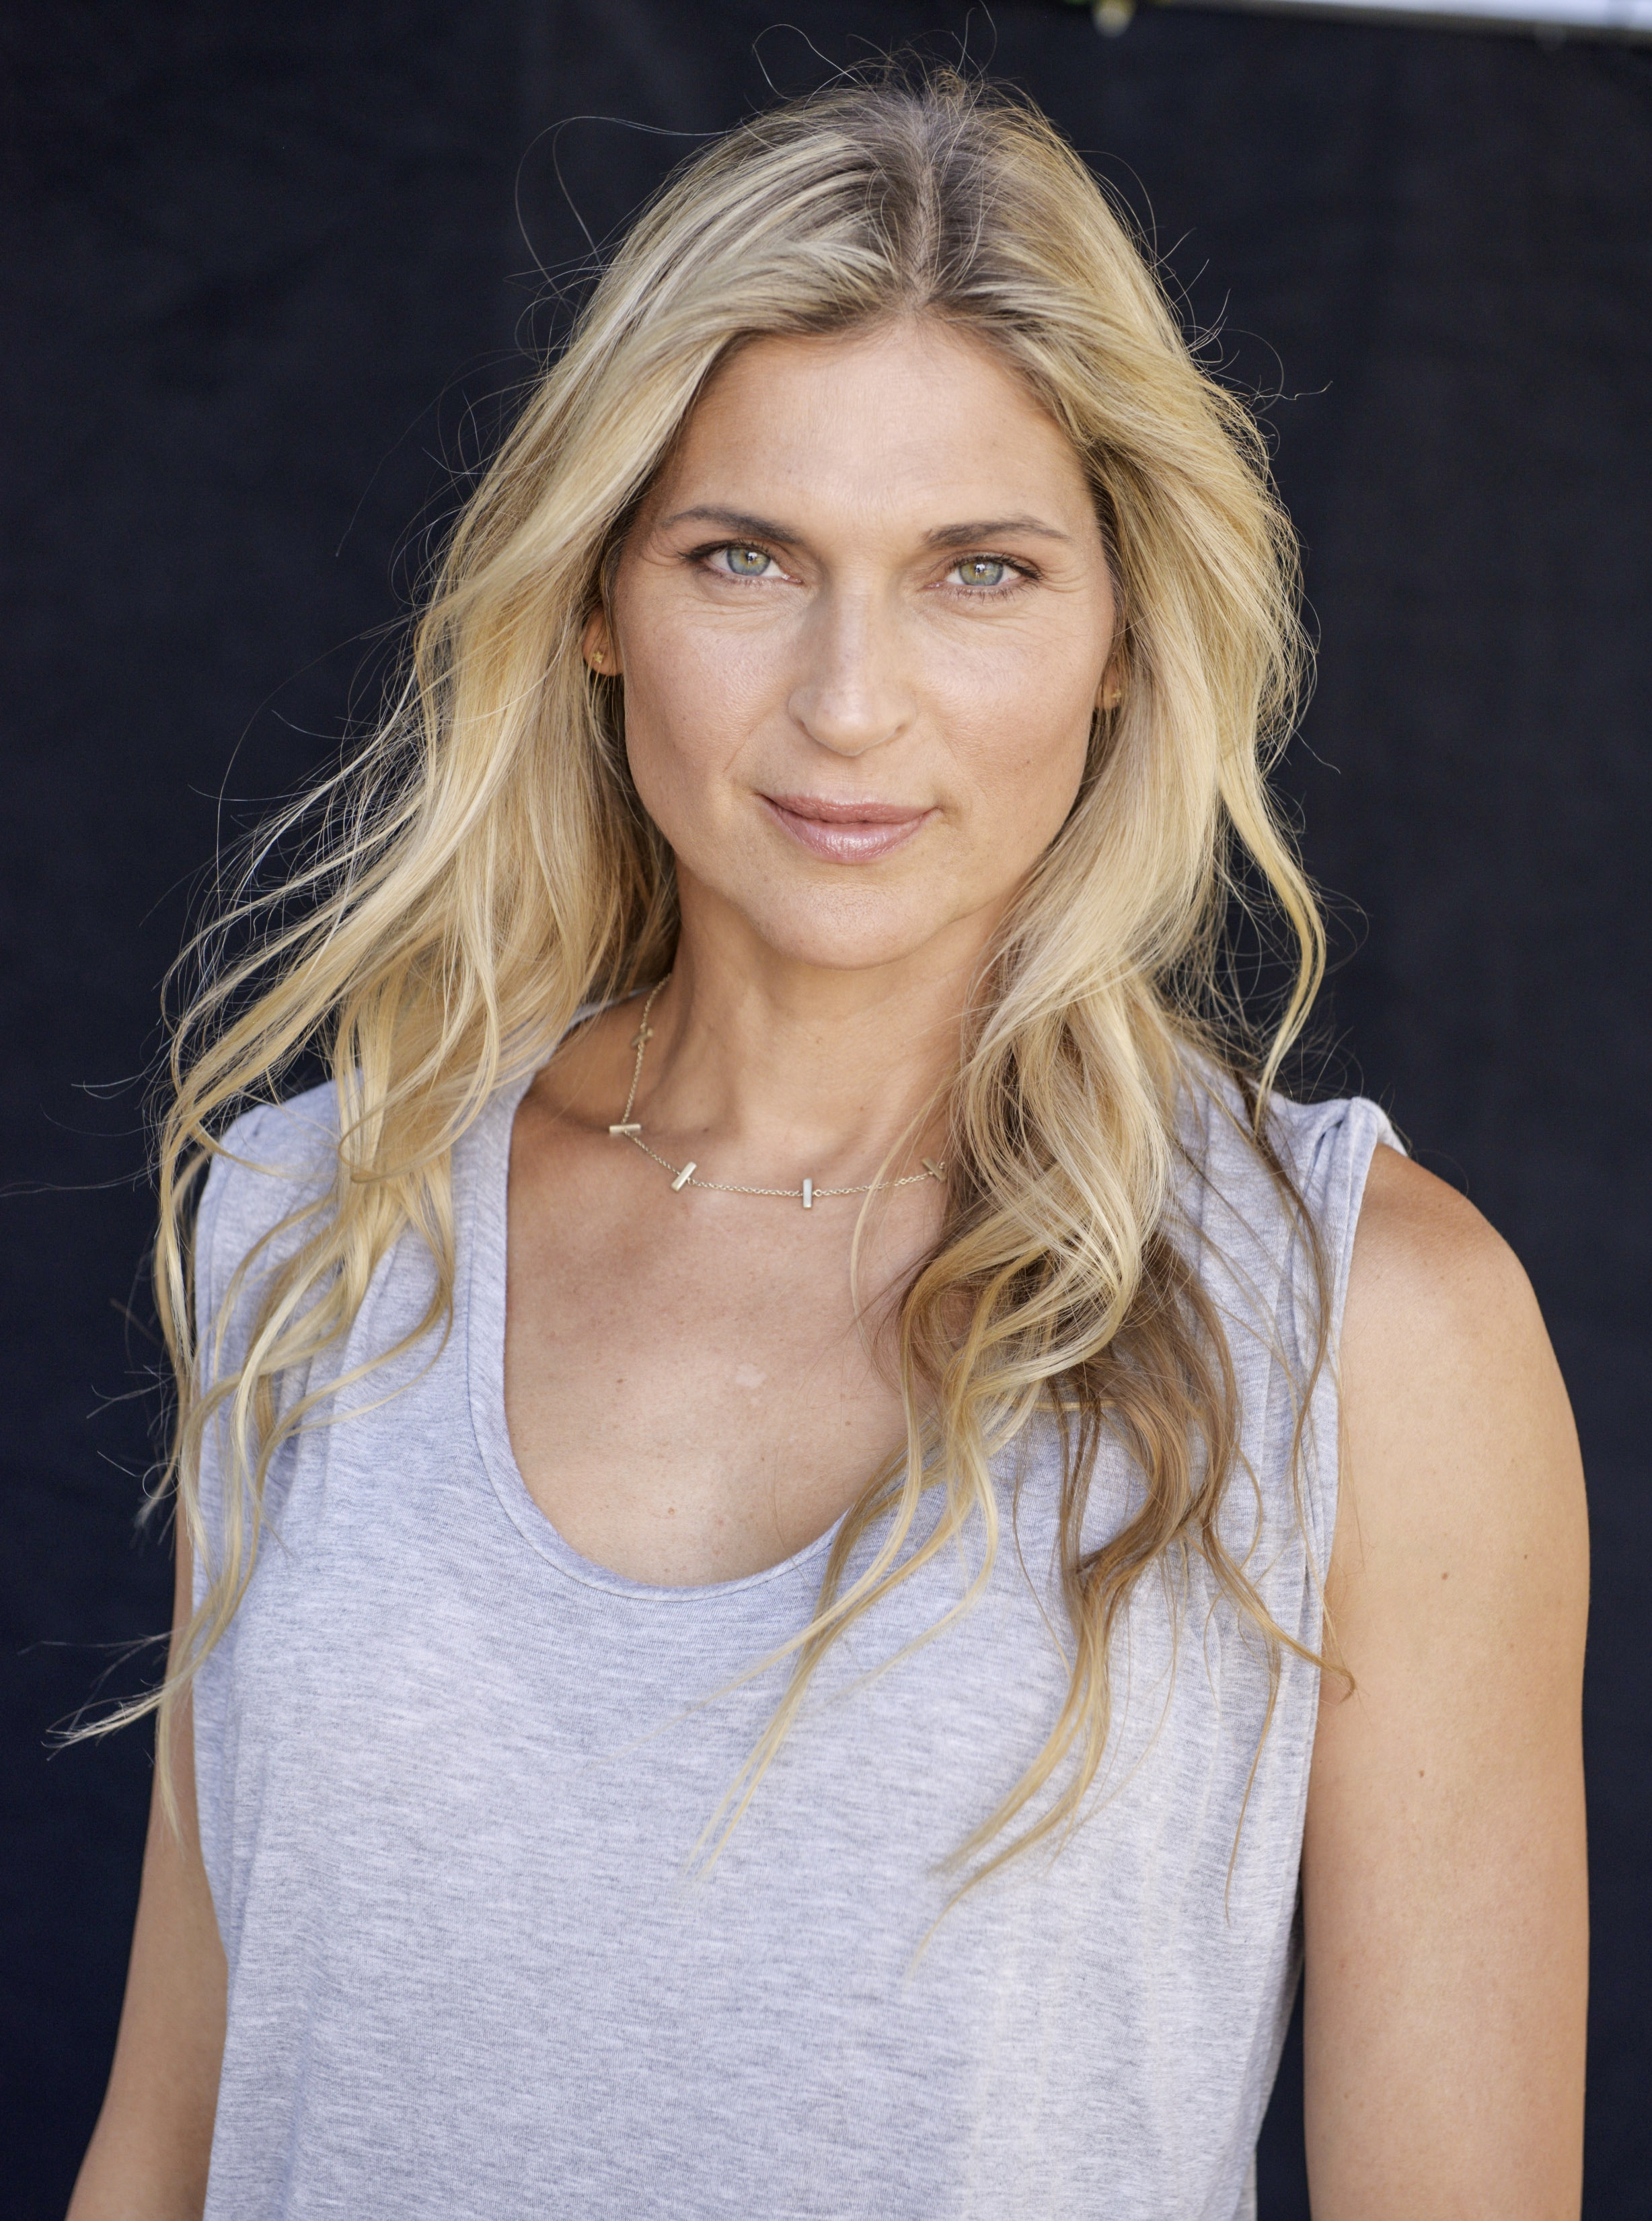 Interview with Gabby Reece